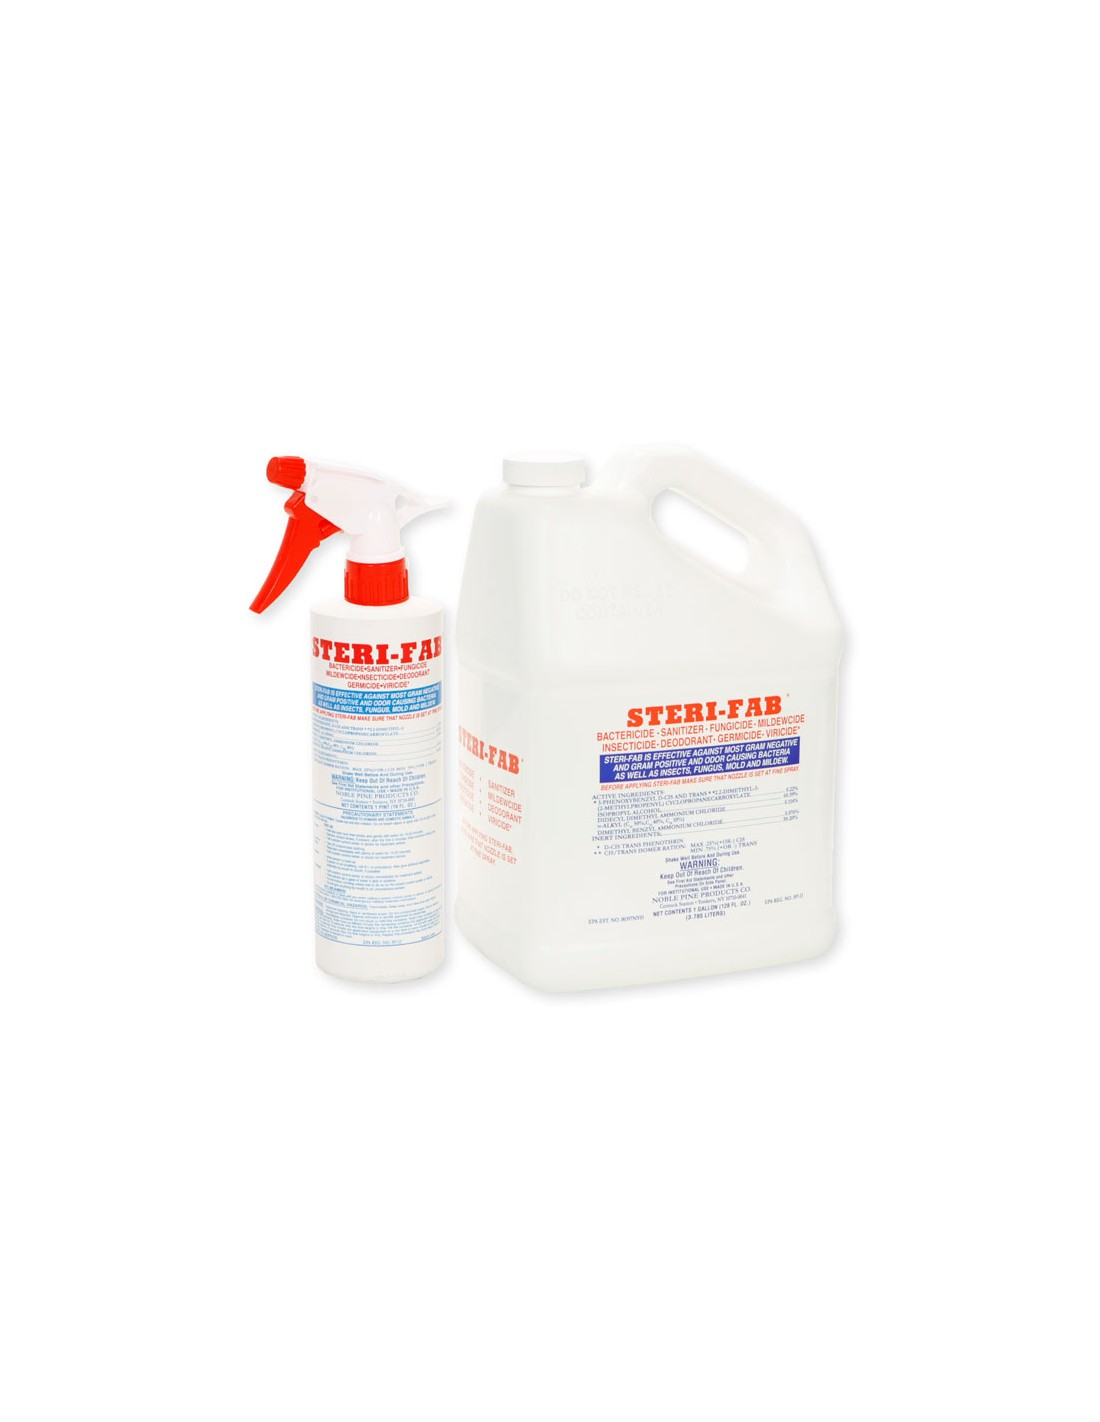 Does this product work on all mites? We have mites that cannot be seen but are biting the family... please help!